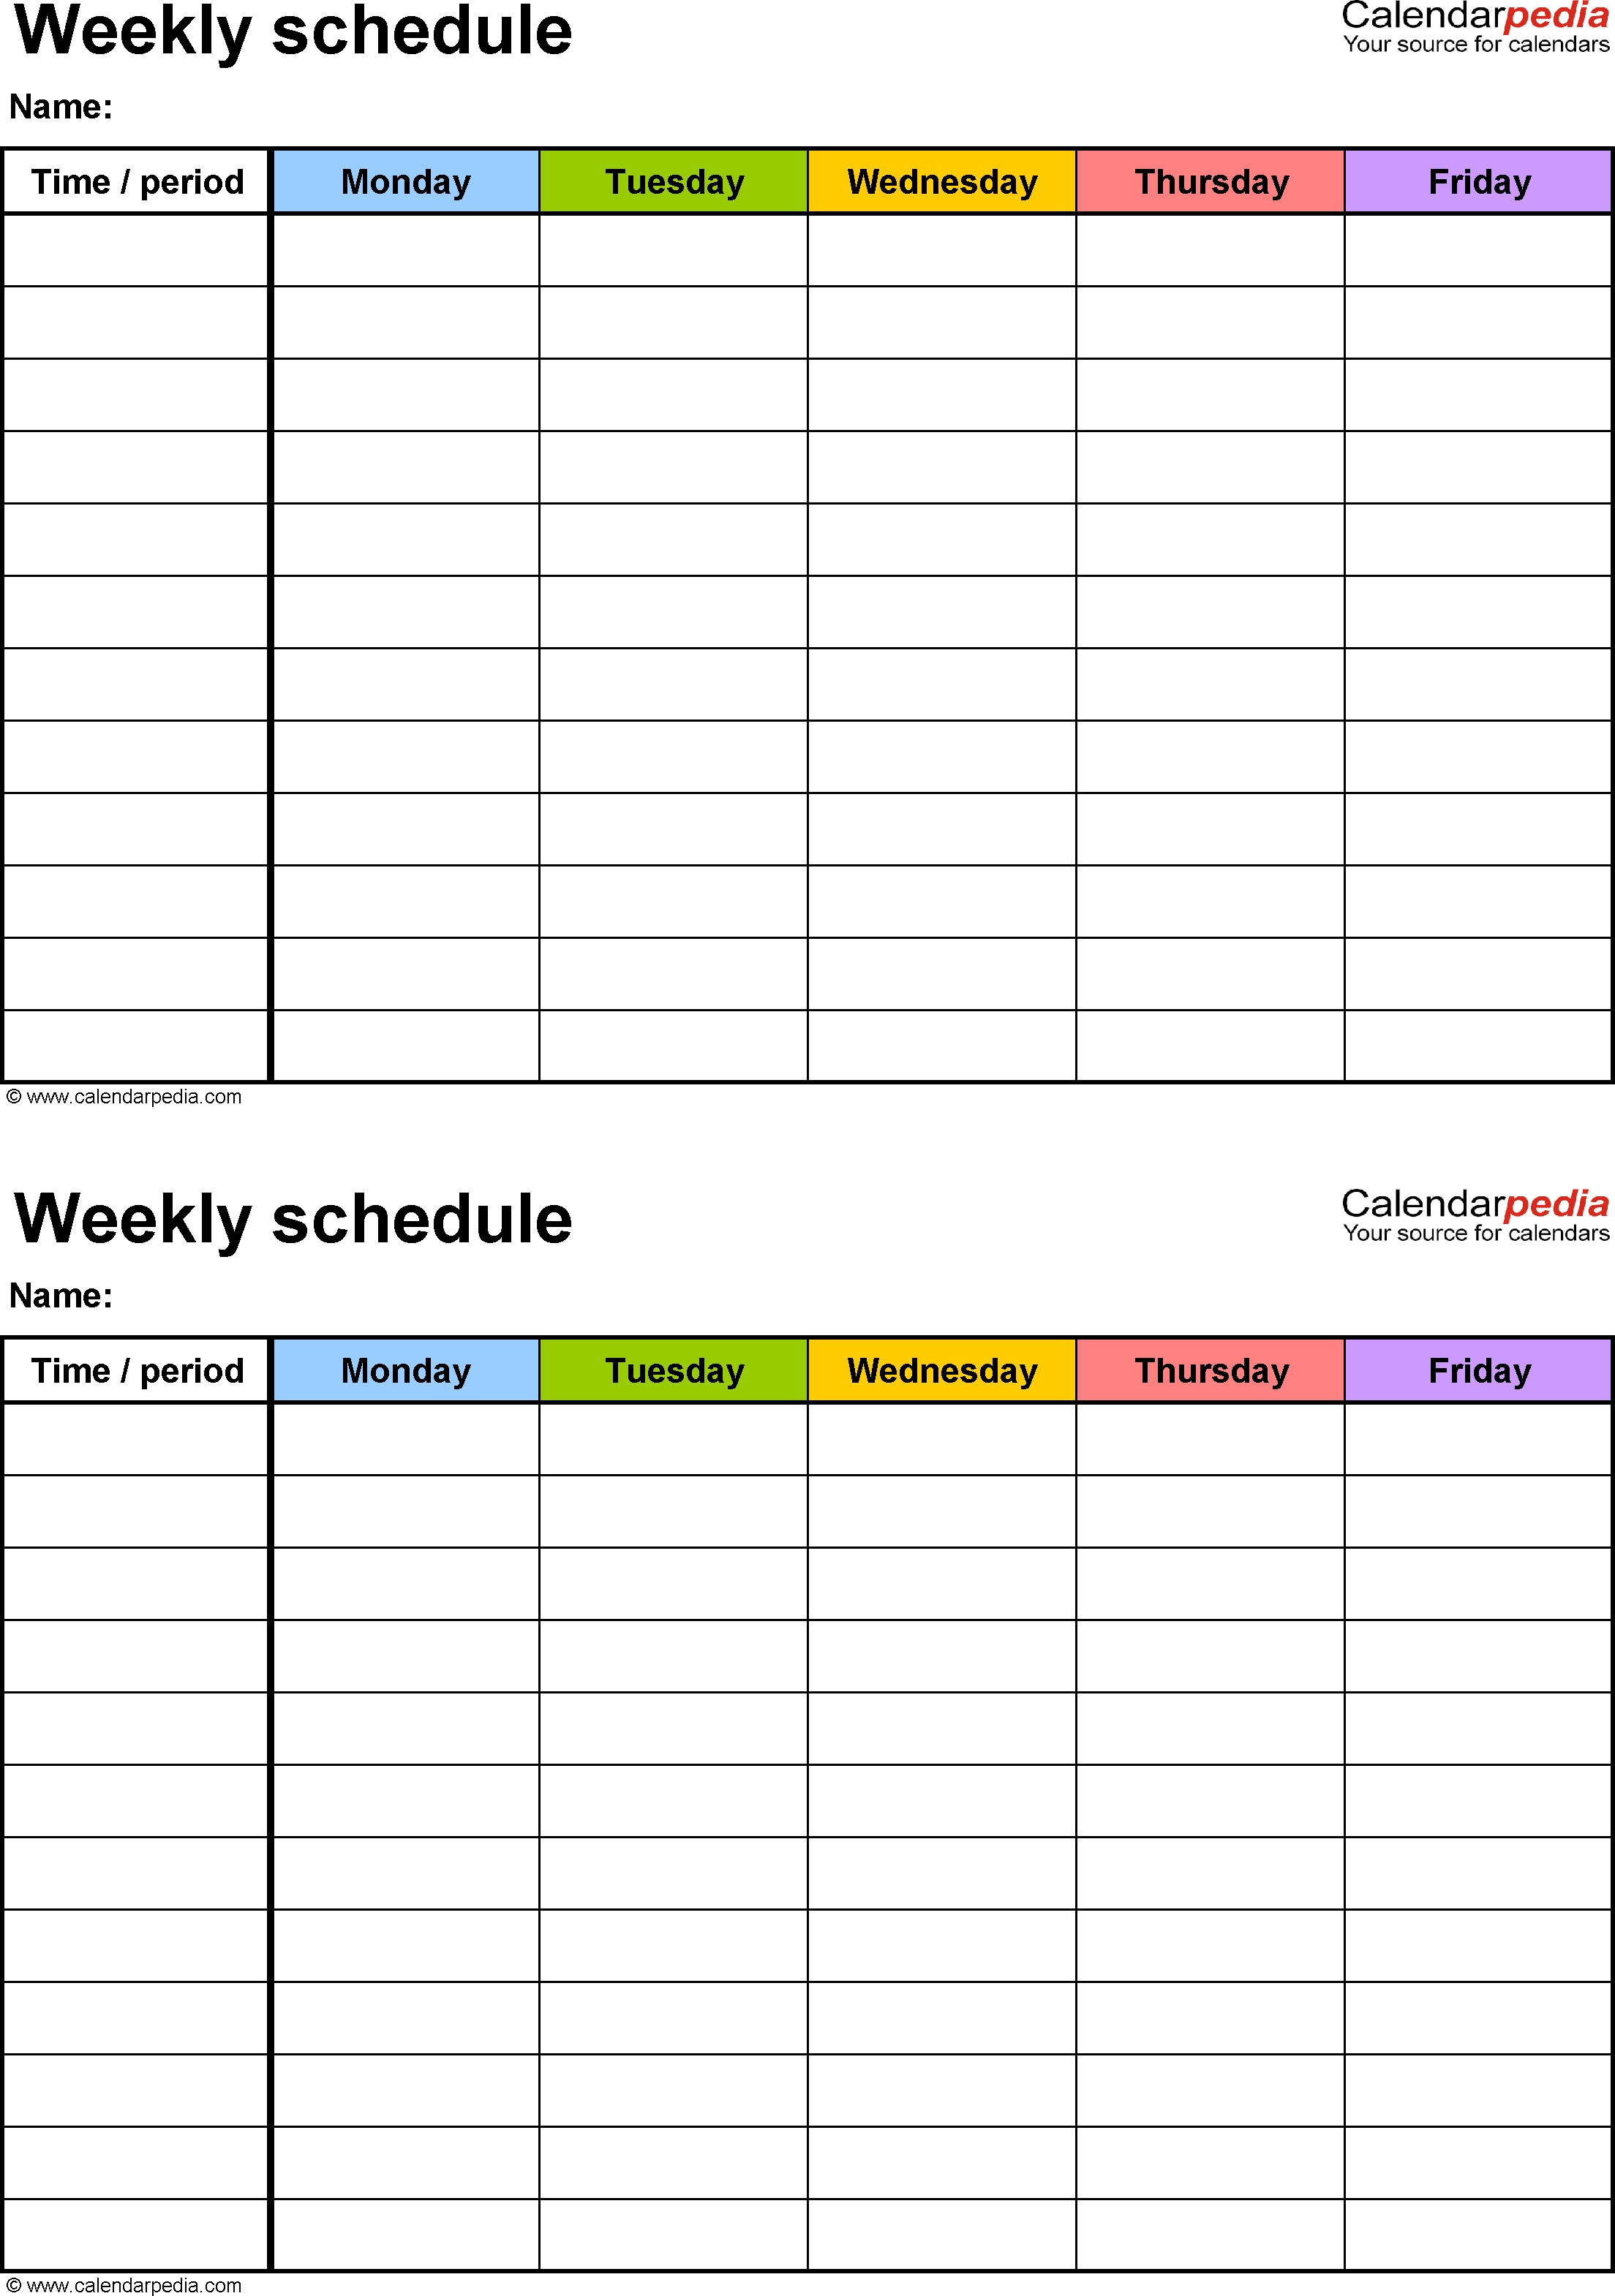 Free Weekly Schedule Templates For Word - 18 Templates with regard to Blank Two Week Schedule Template